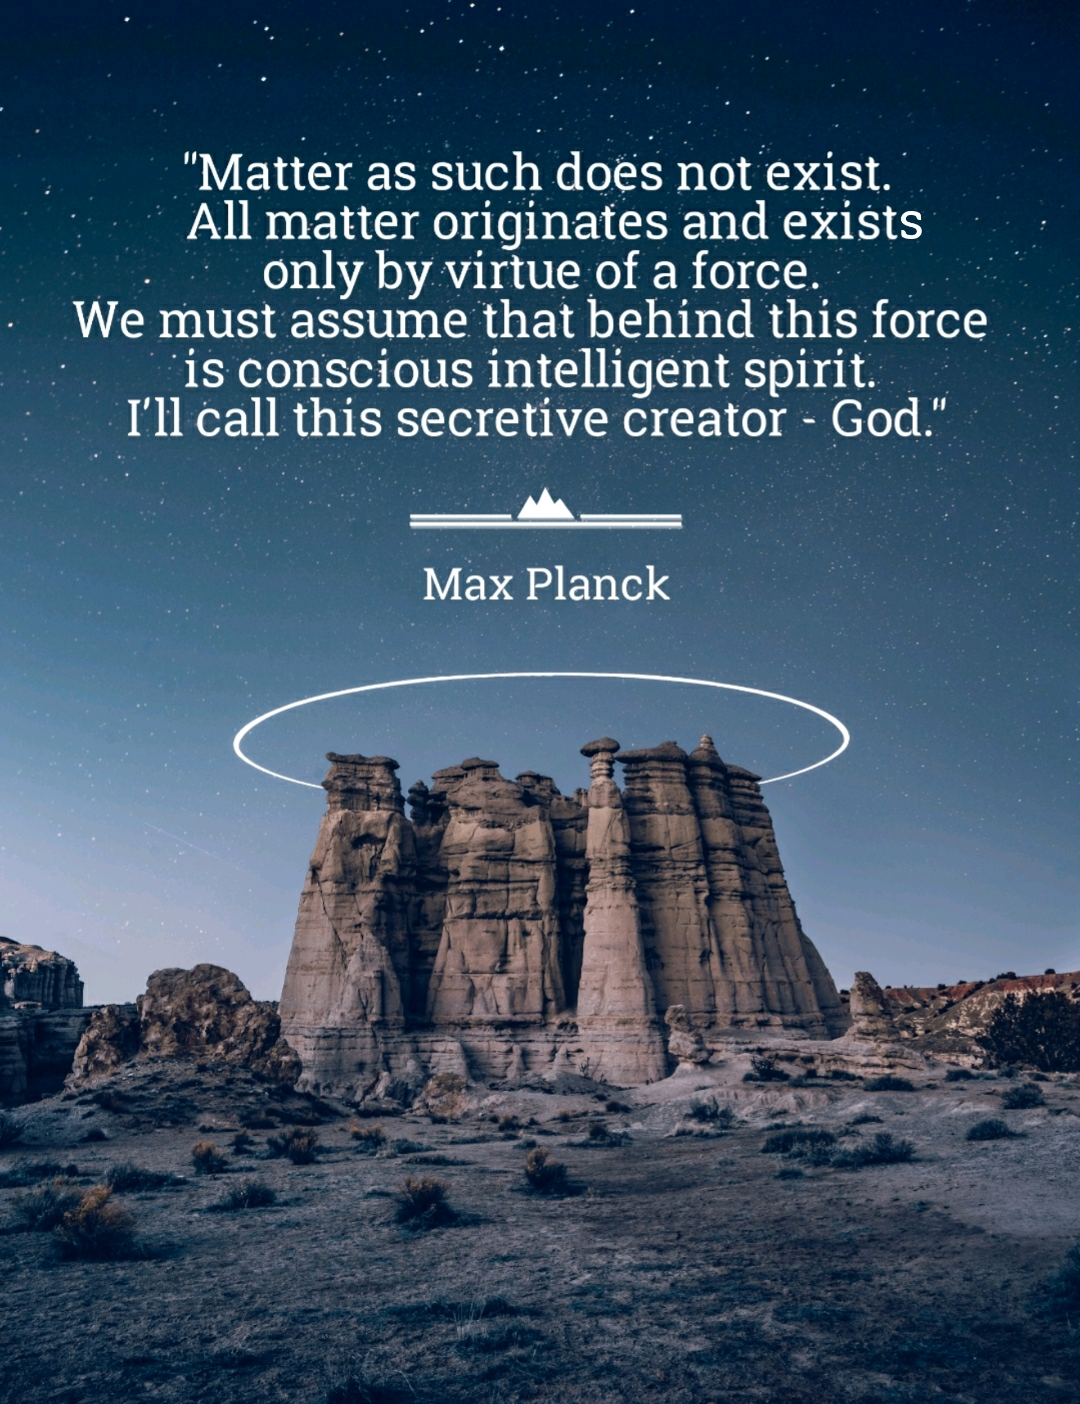 """Matter originates and exists only by virtue of a force wich I'll call God."" Max Planck [1080×1404]"